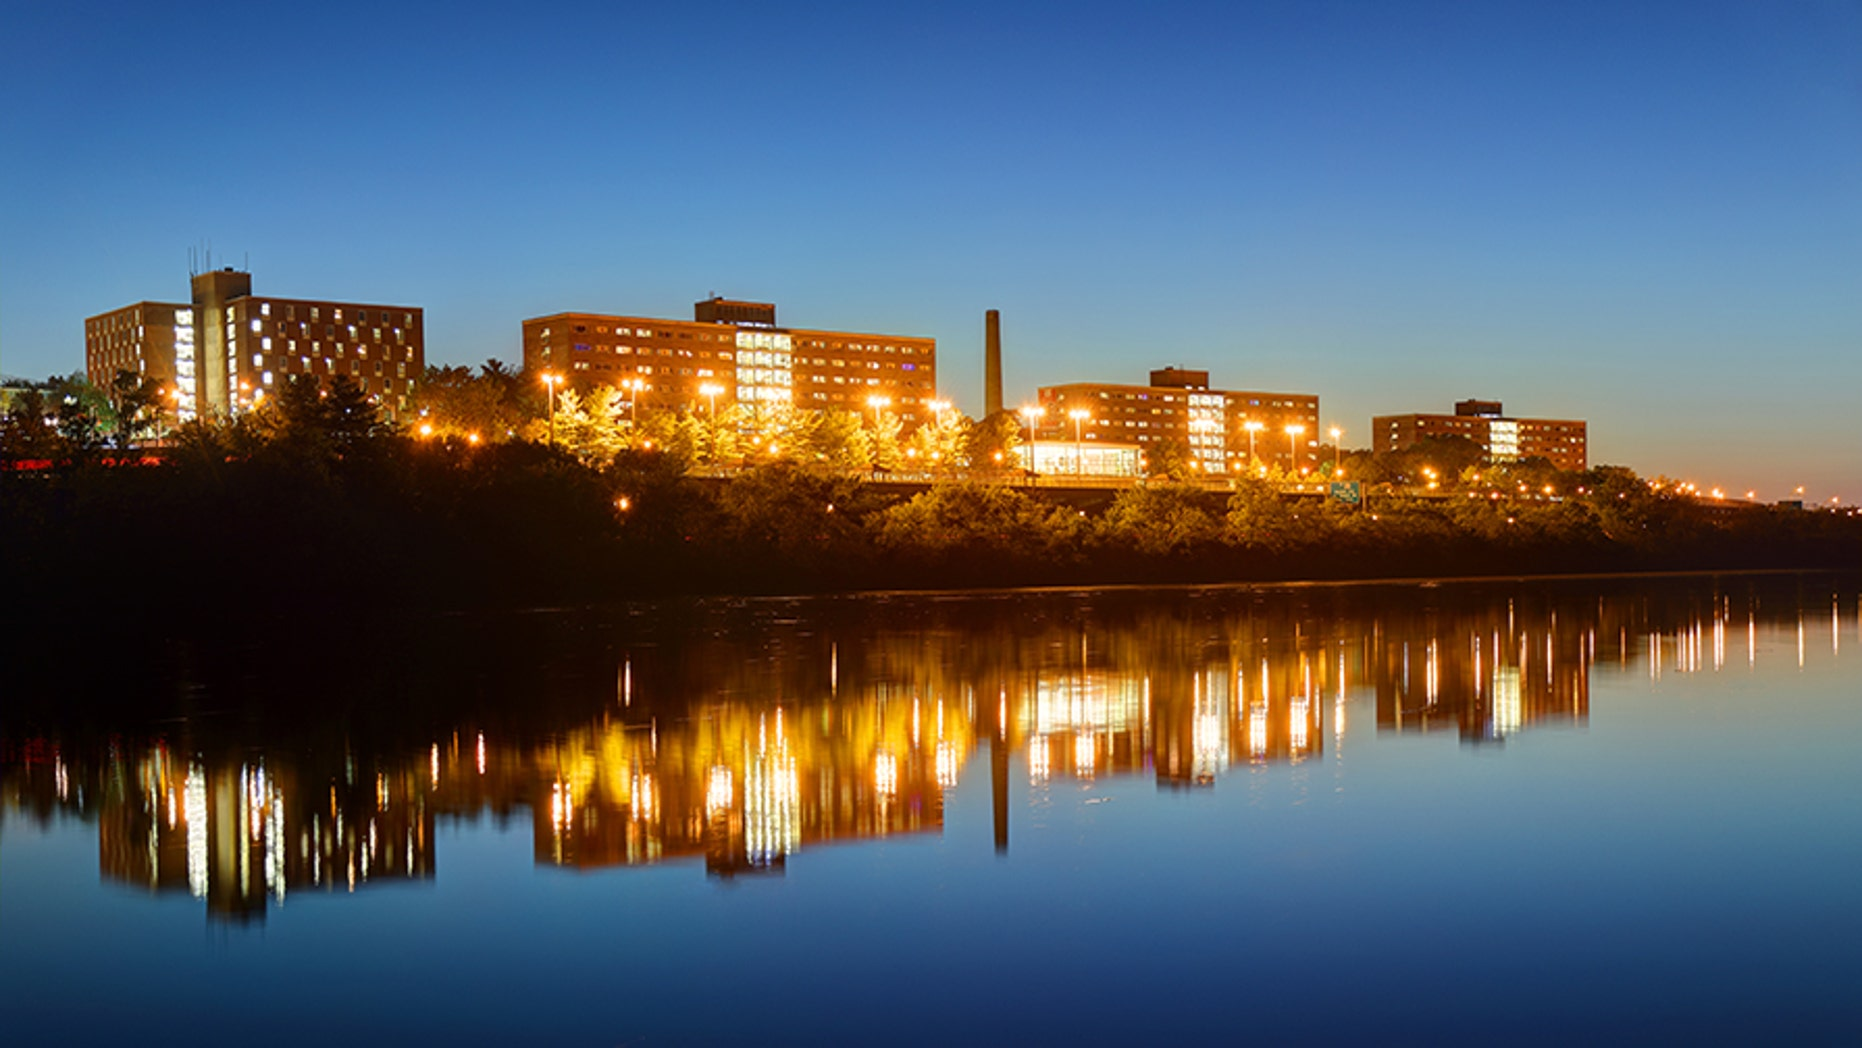 Night view of the Rutgers University campus Halls reflecting on a calm Raritan River